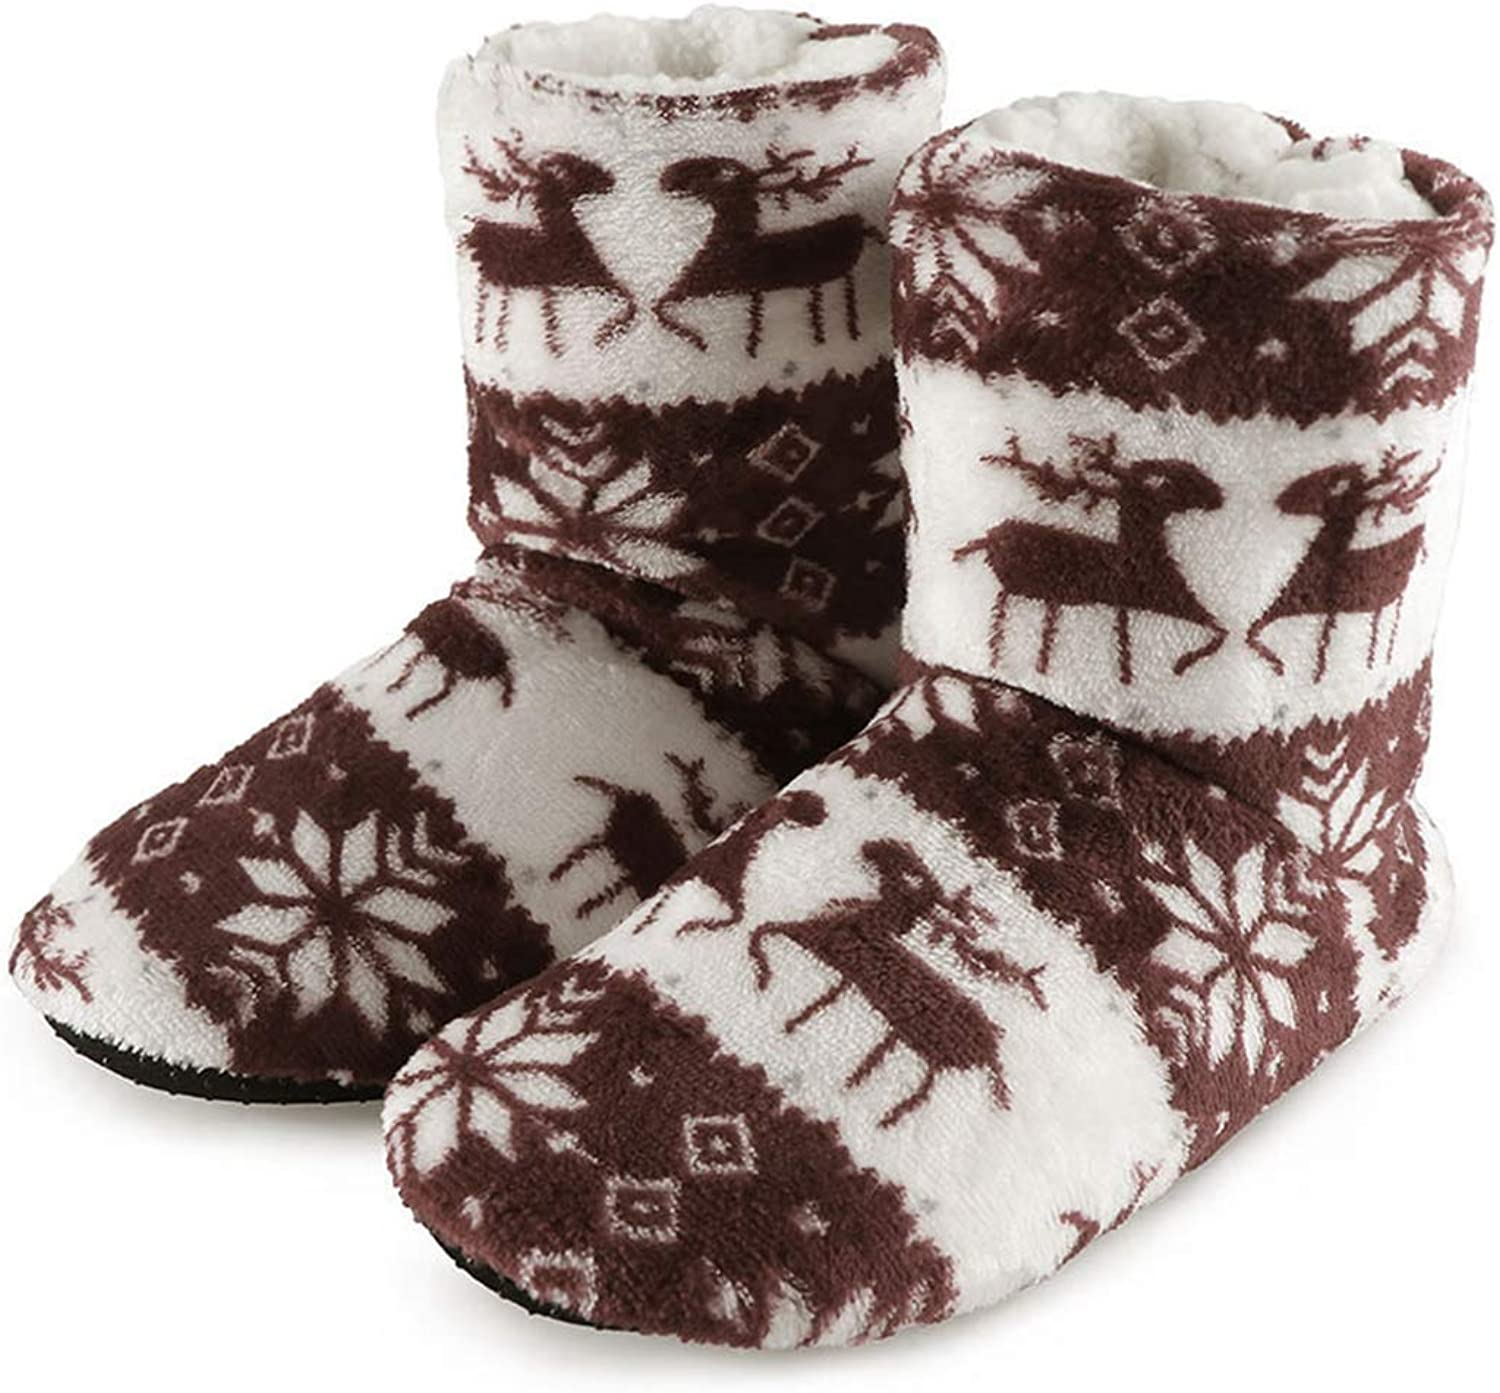 Winter Fluffy Slippers Boots Furry Slides Warm Plush Christmas Long Socks House Indoor shoes